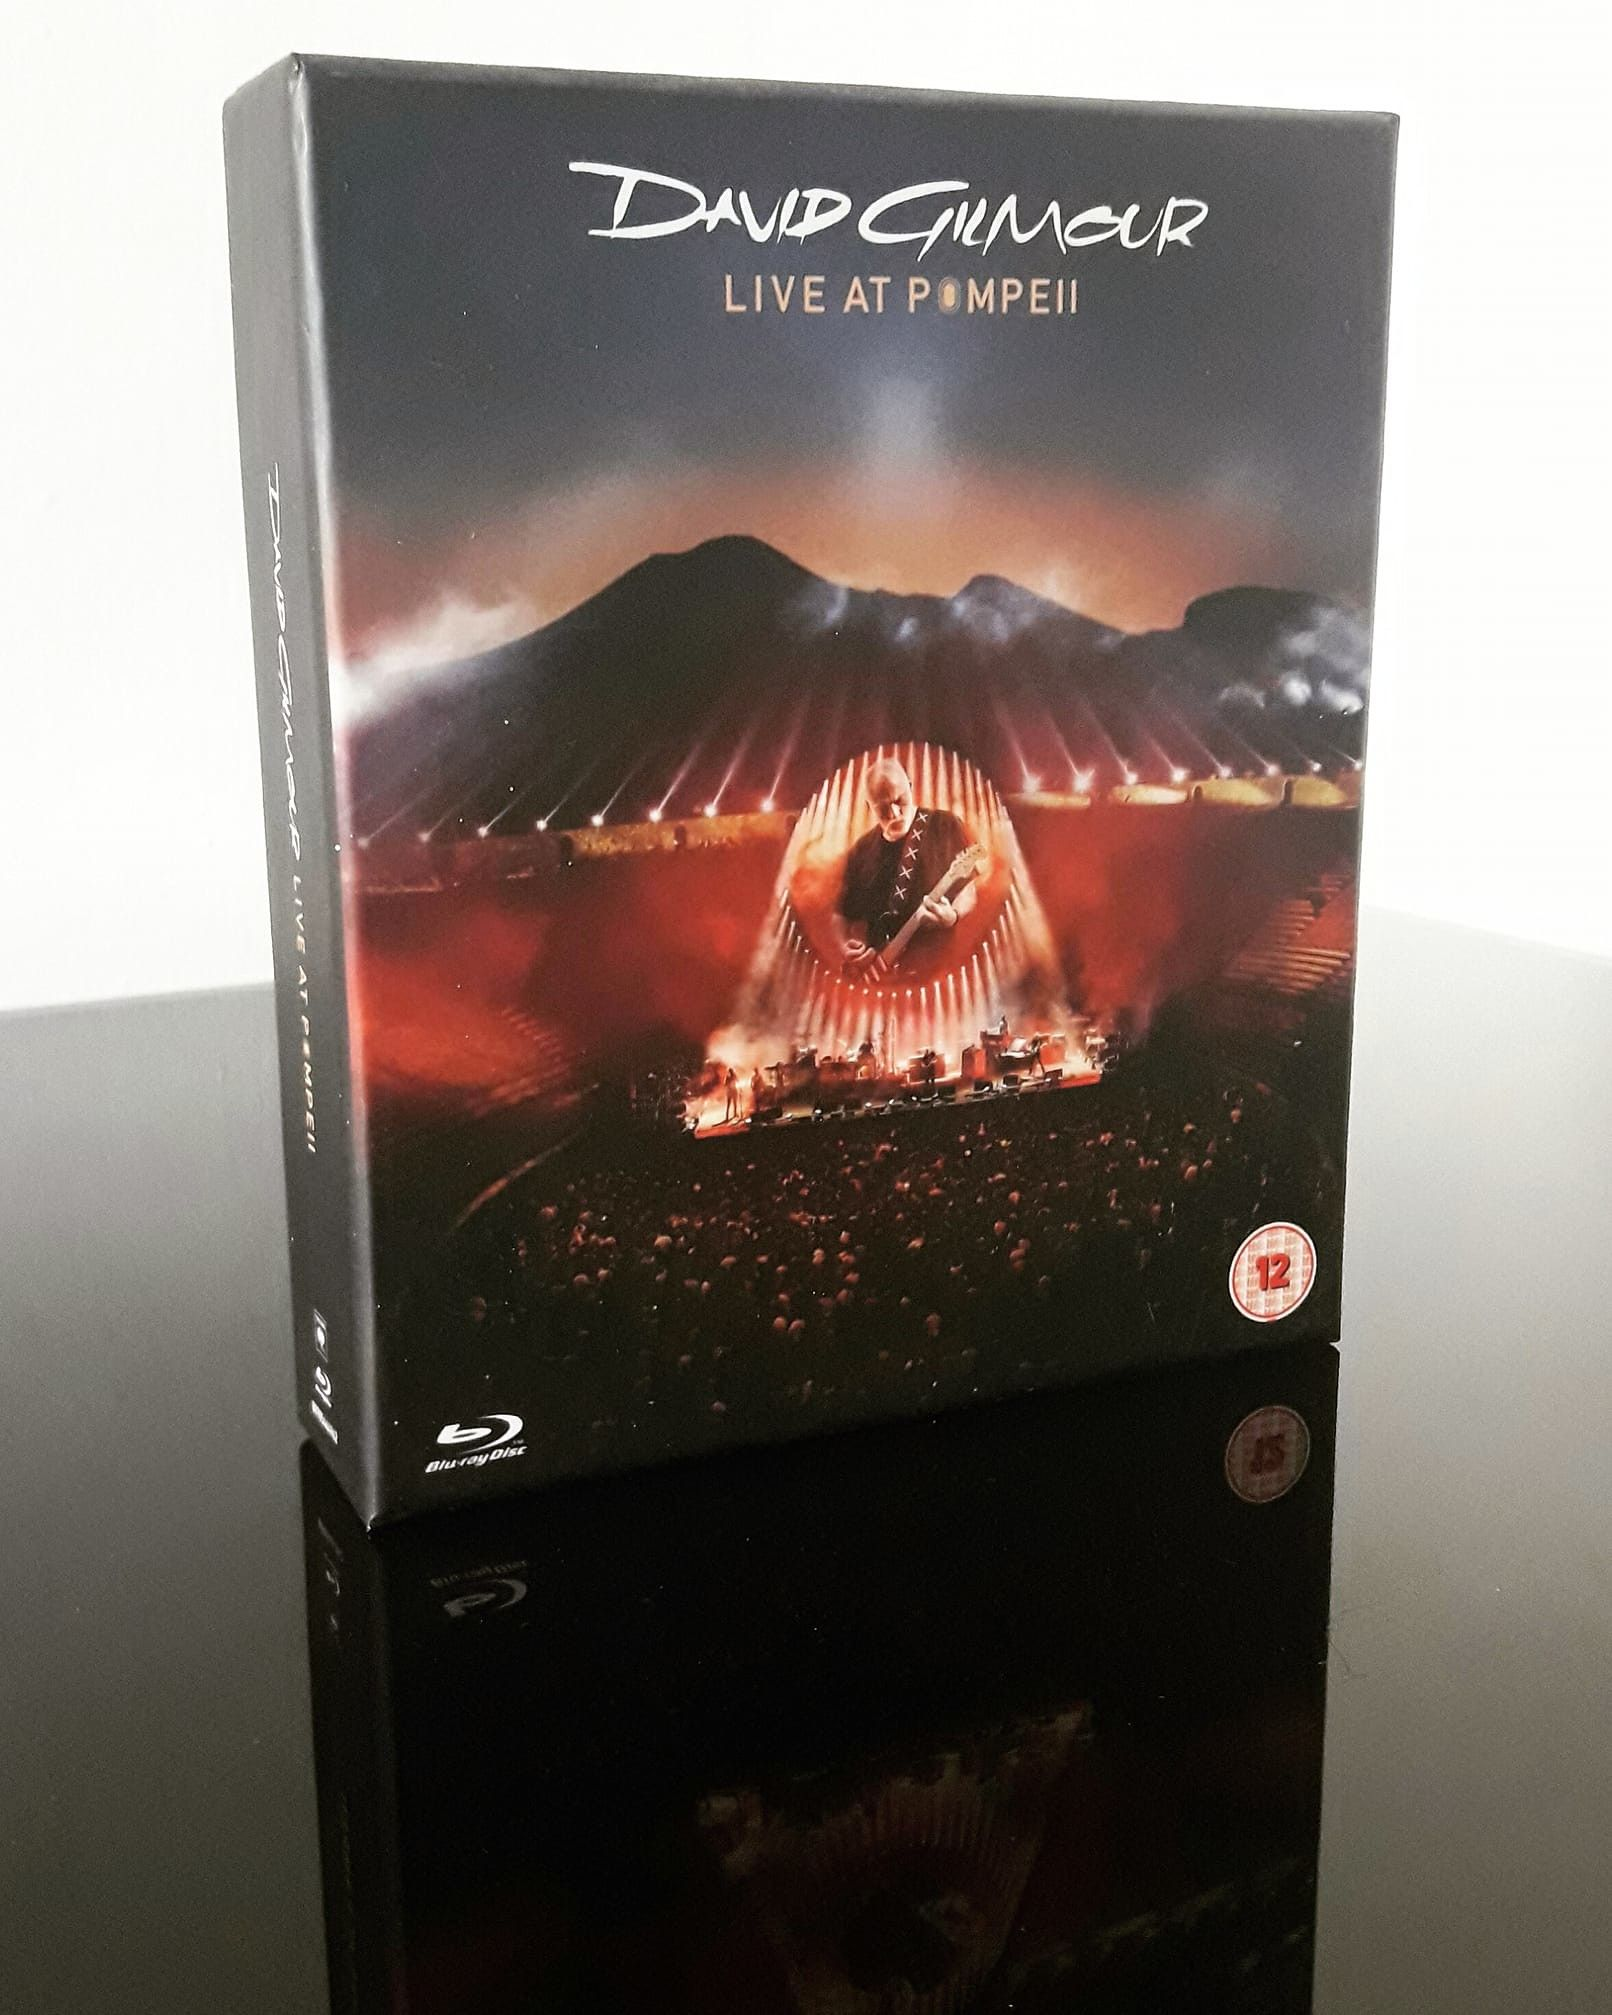 David Gilmour Live At Pompeii Blu Ray David Gilmour Live David Gilmour Pompeii